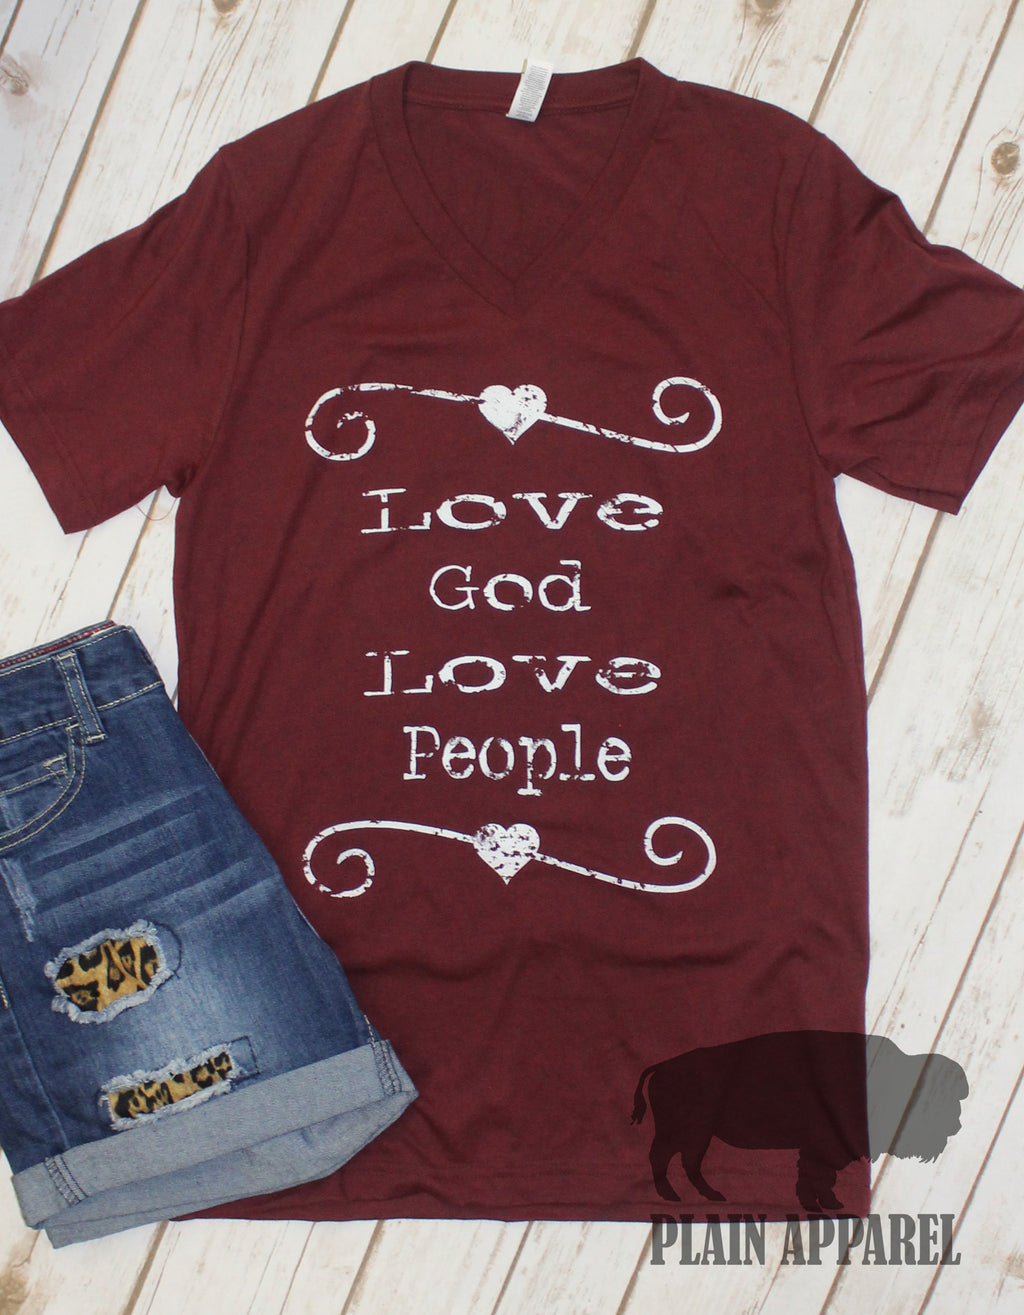 Love God Love People V-Neck Tee - Bless UR Heart Boutique